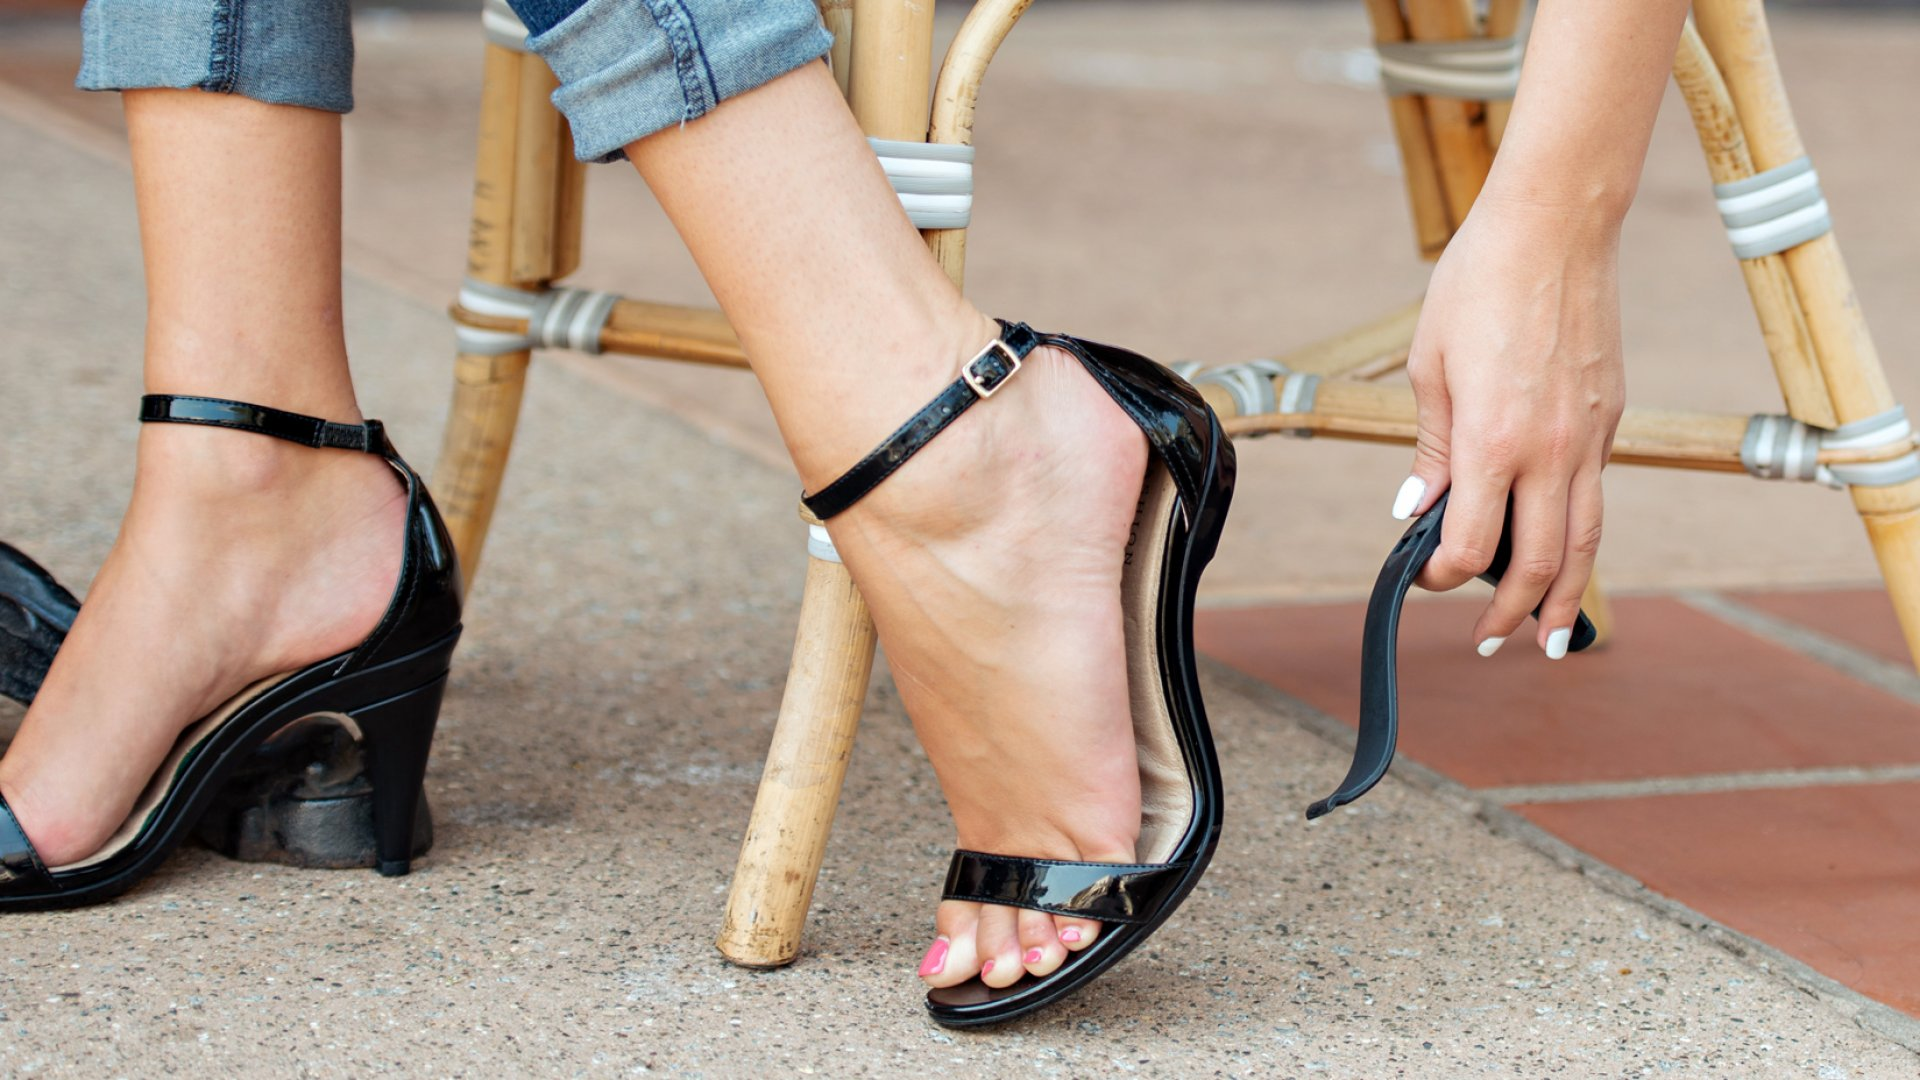 Pashion Footwear Launches Line of Shoes That Convert From High Heels to Flats